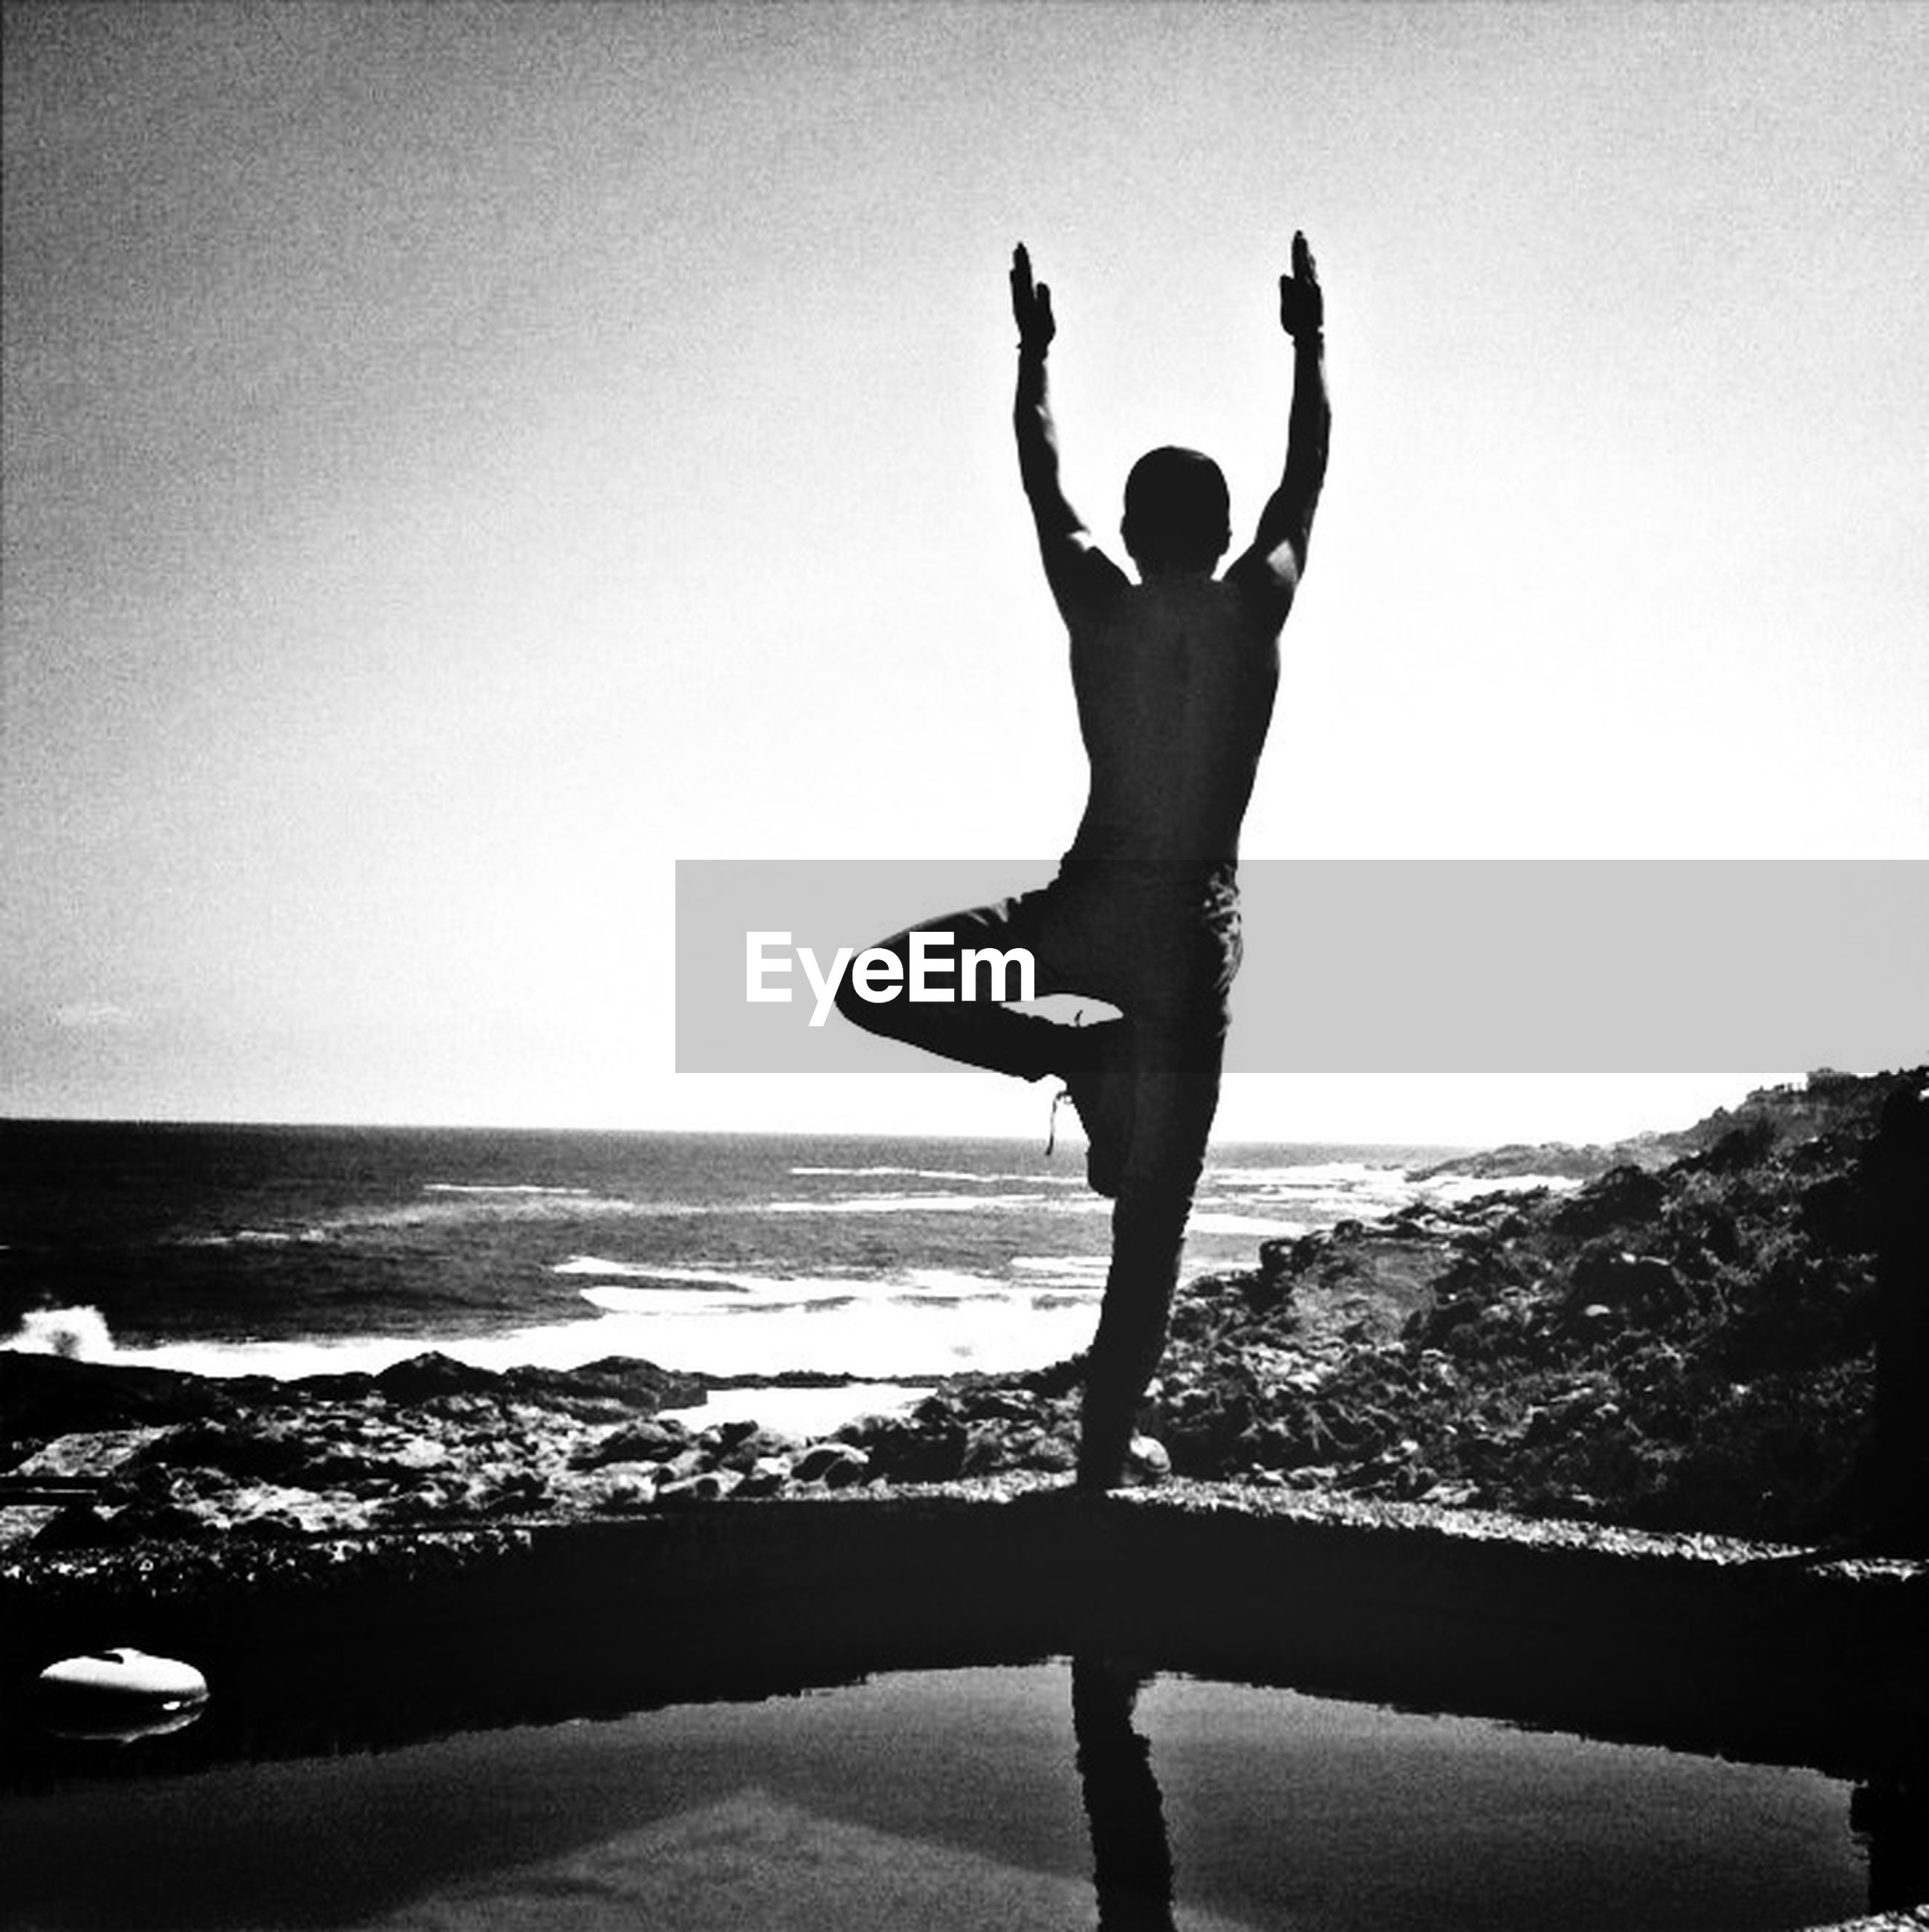 sea, horizon over water, water, beach, clear sky, full length, silhouette, leisure activity, shore, copy space, lifestyles, jumping, standing, scenics, arms raised, enjoyment, vacations, tranquil scene